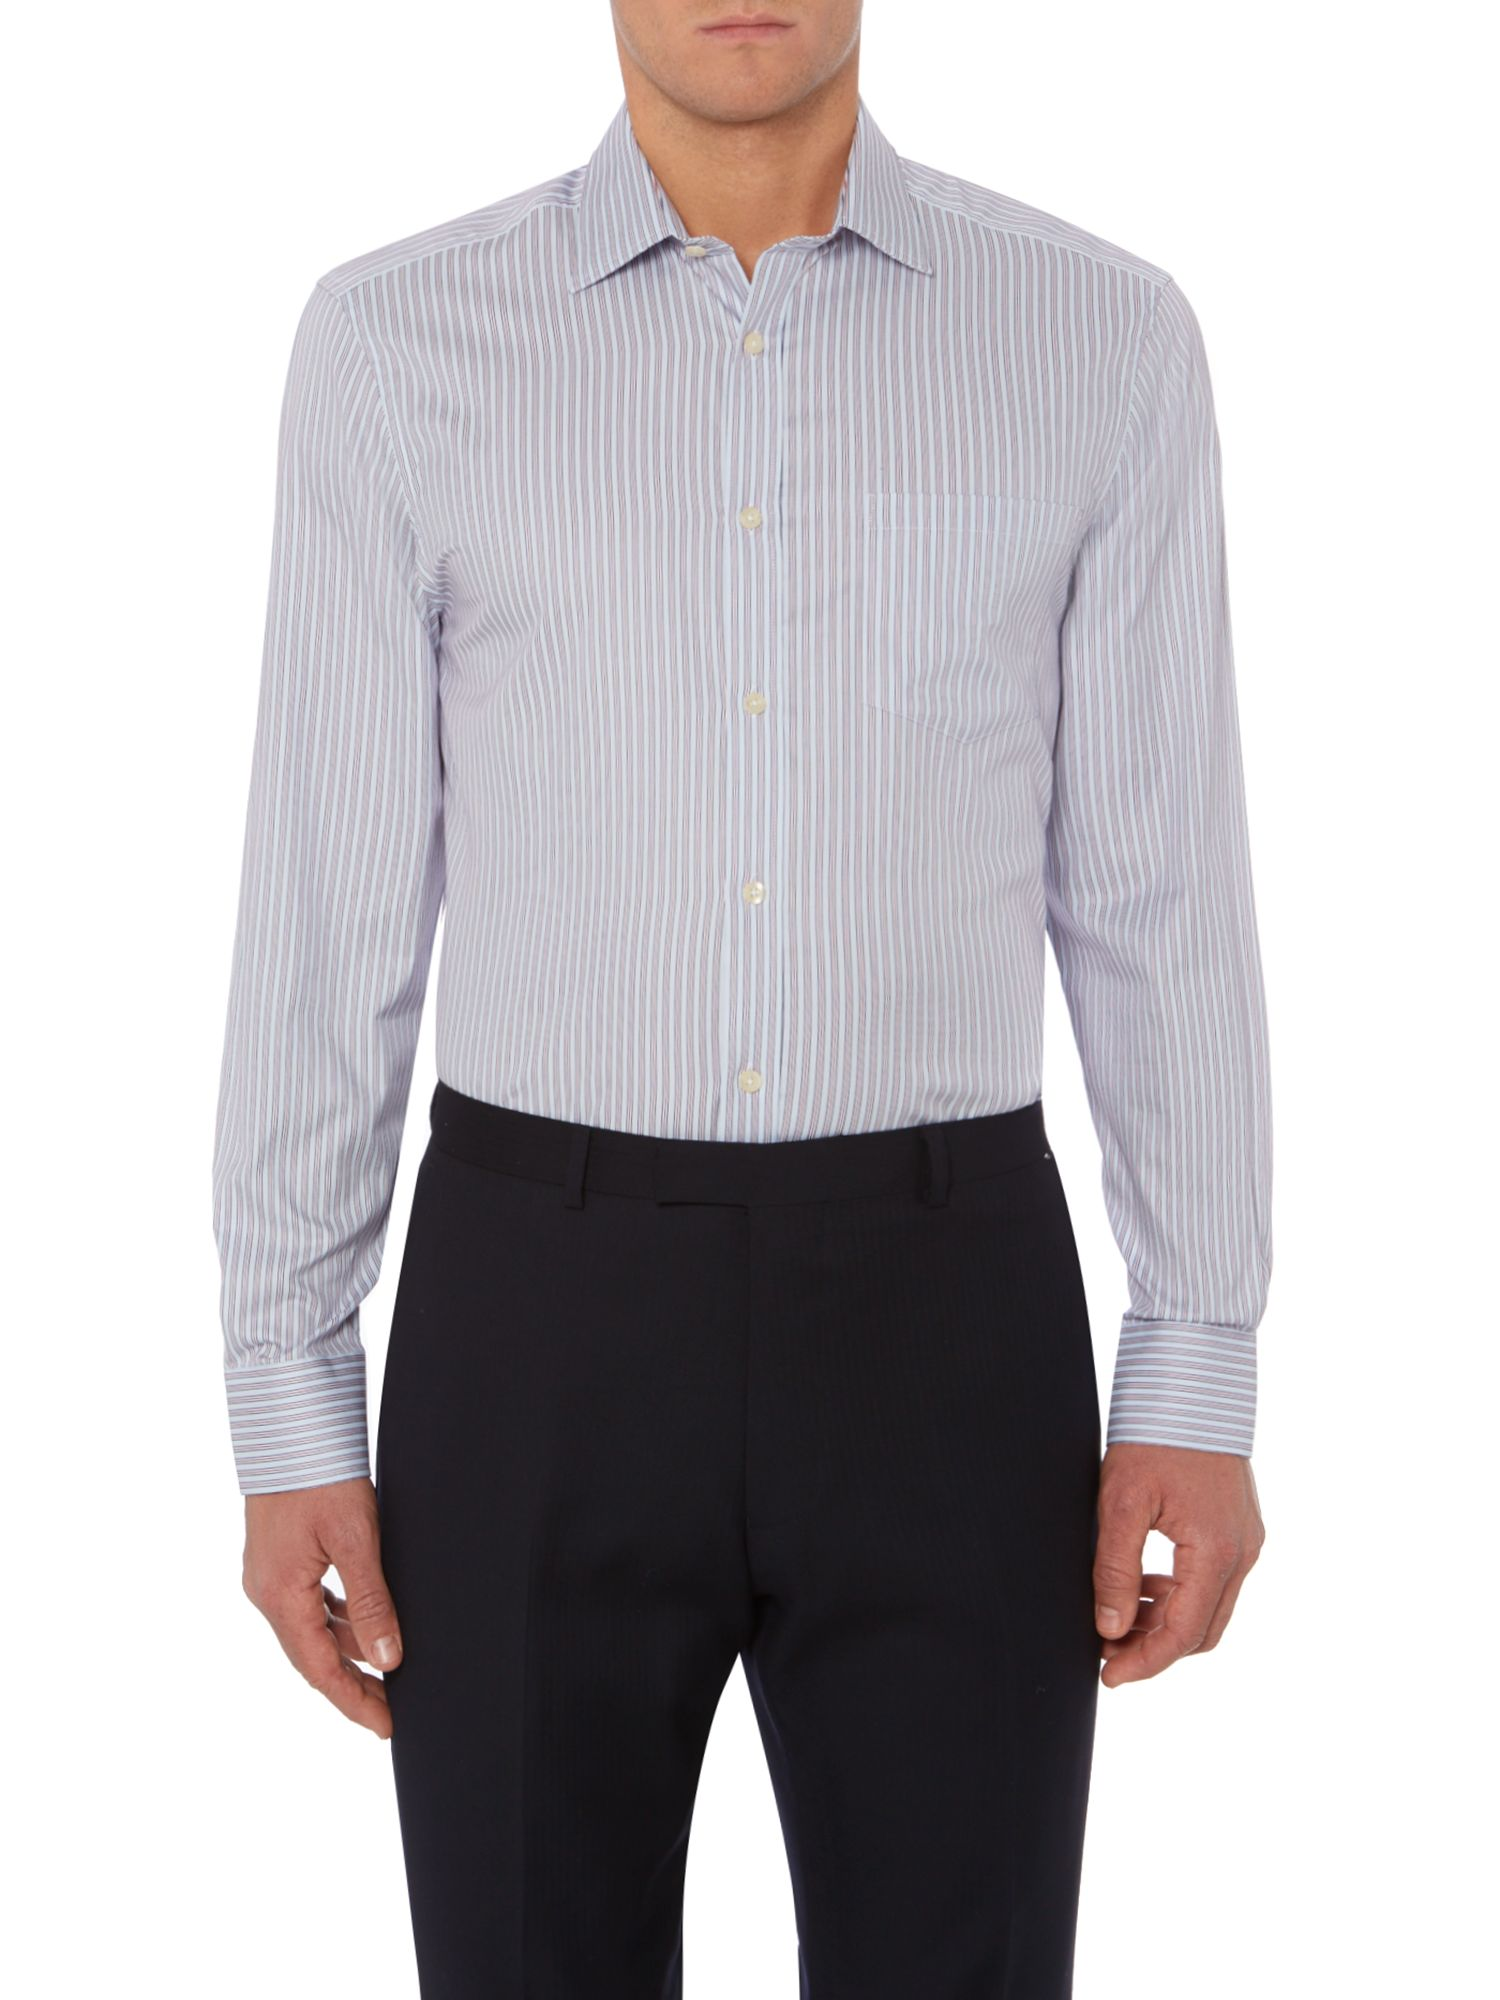 Newbury fine stripe shirt